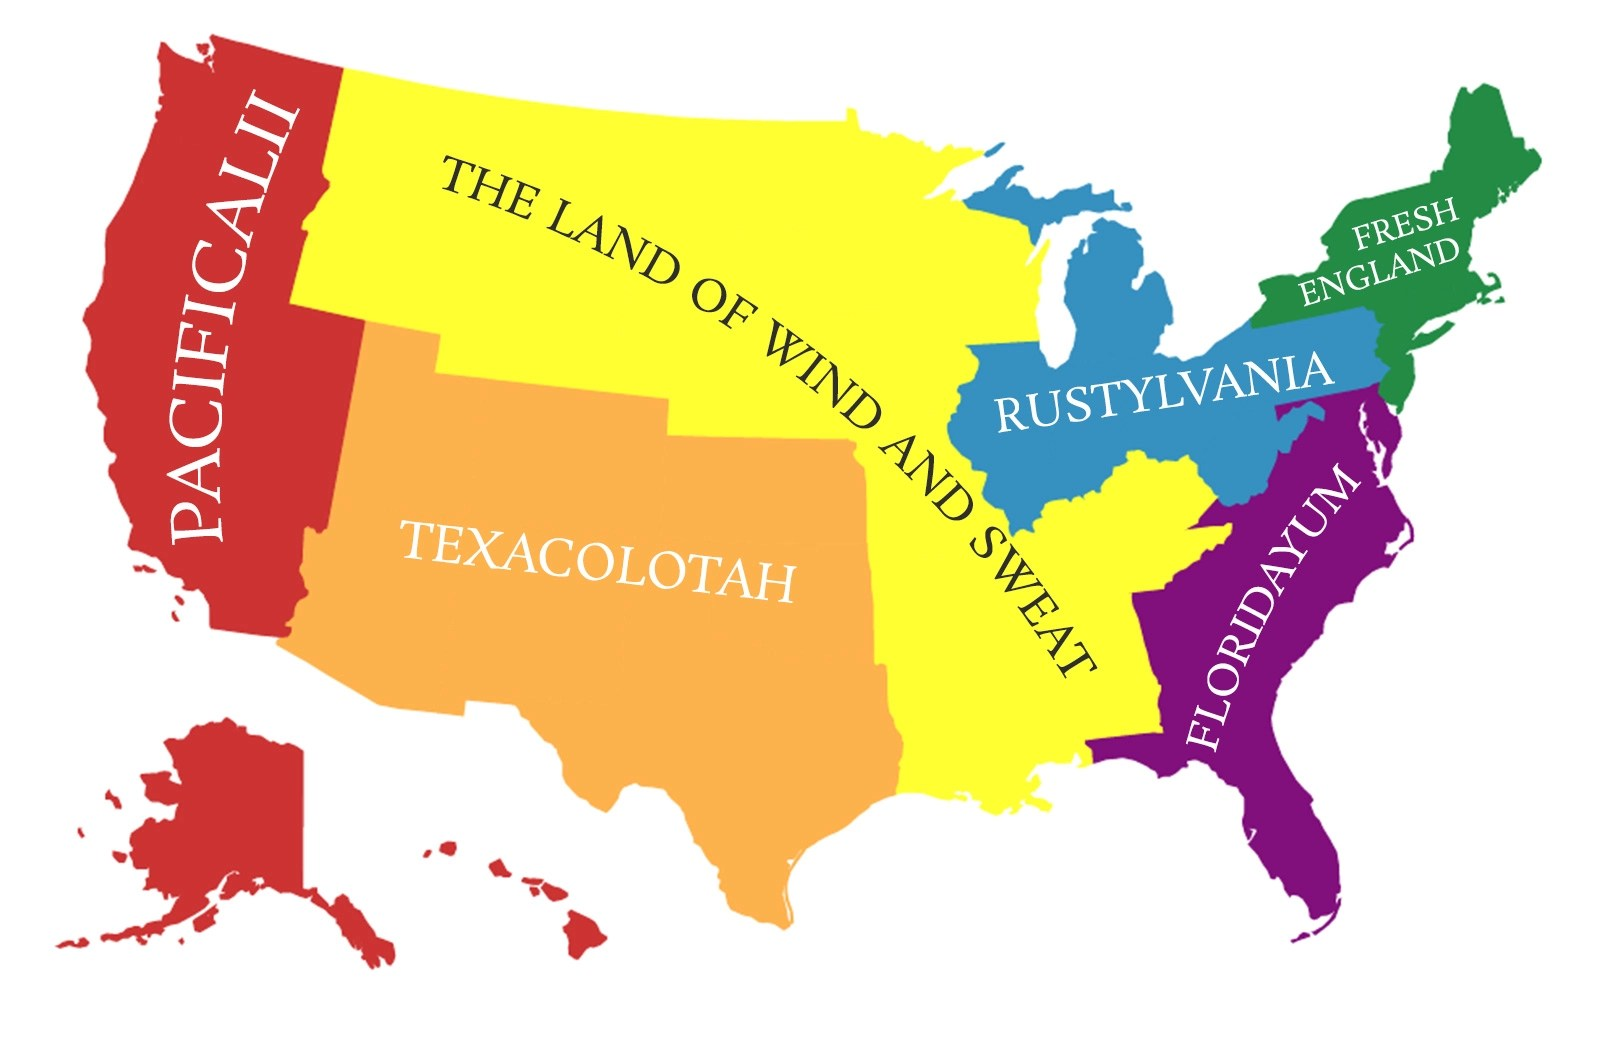 America Divided Into States With The Population Of England